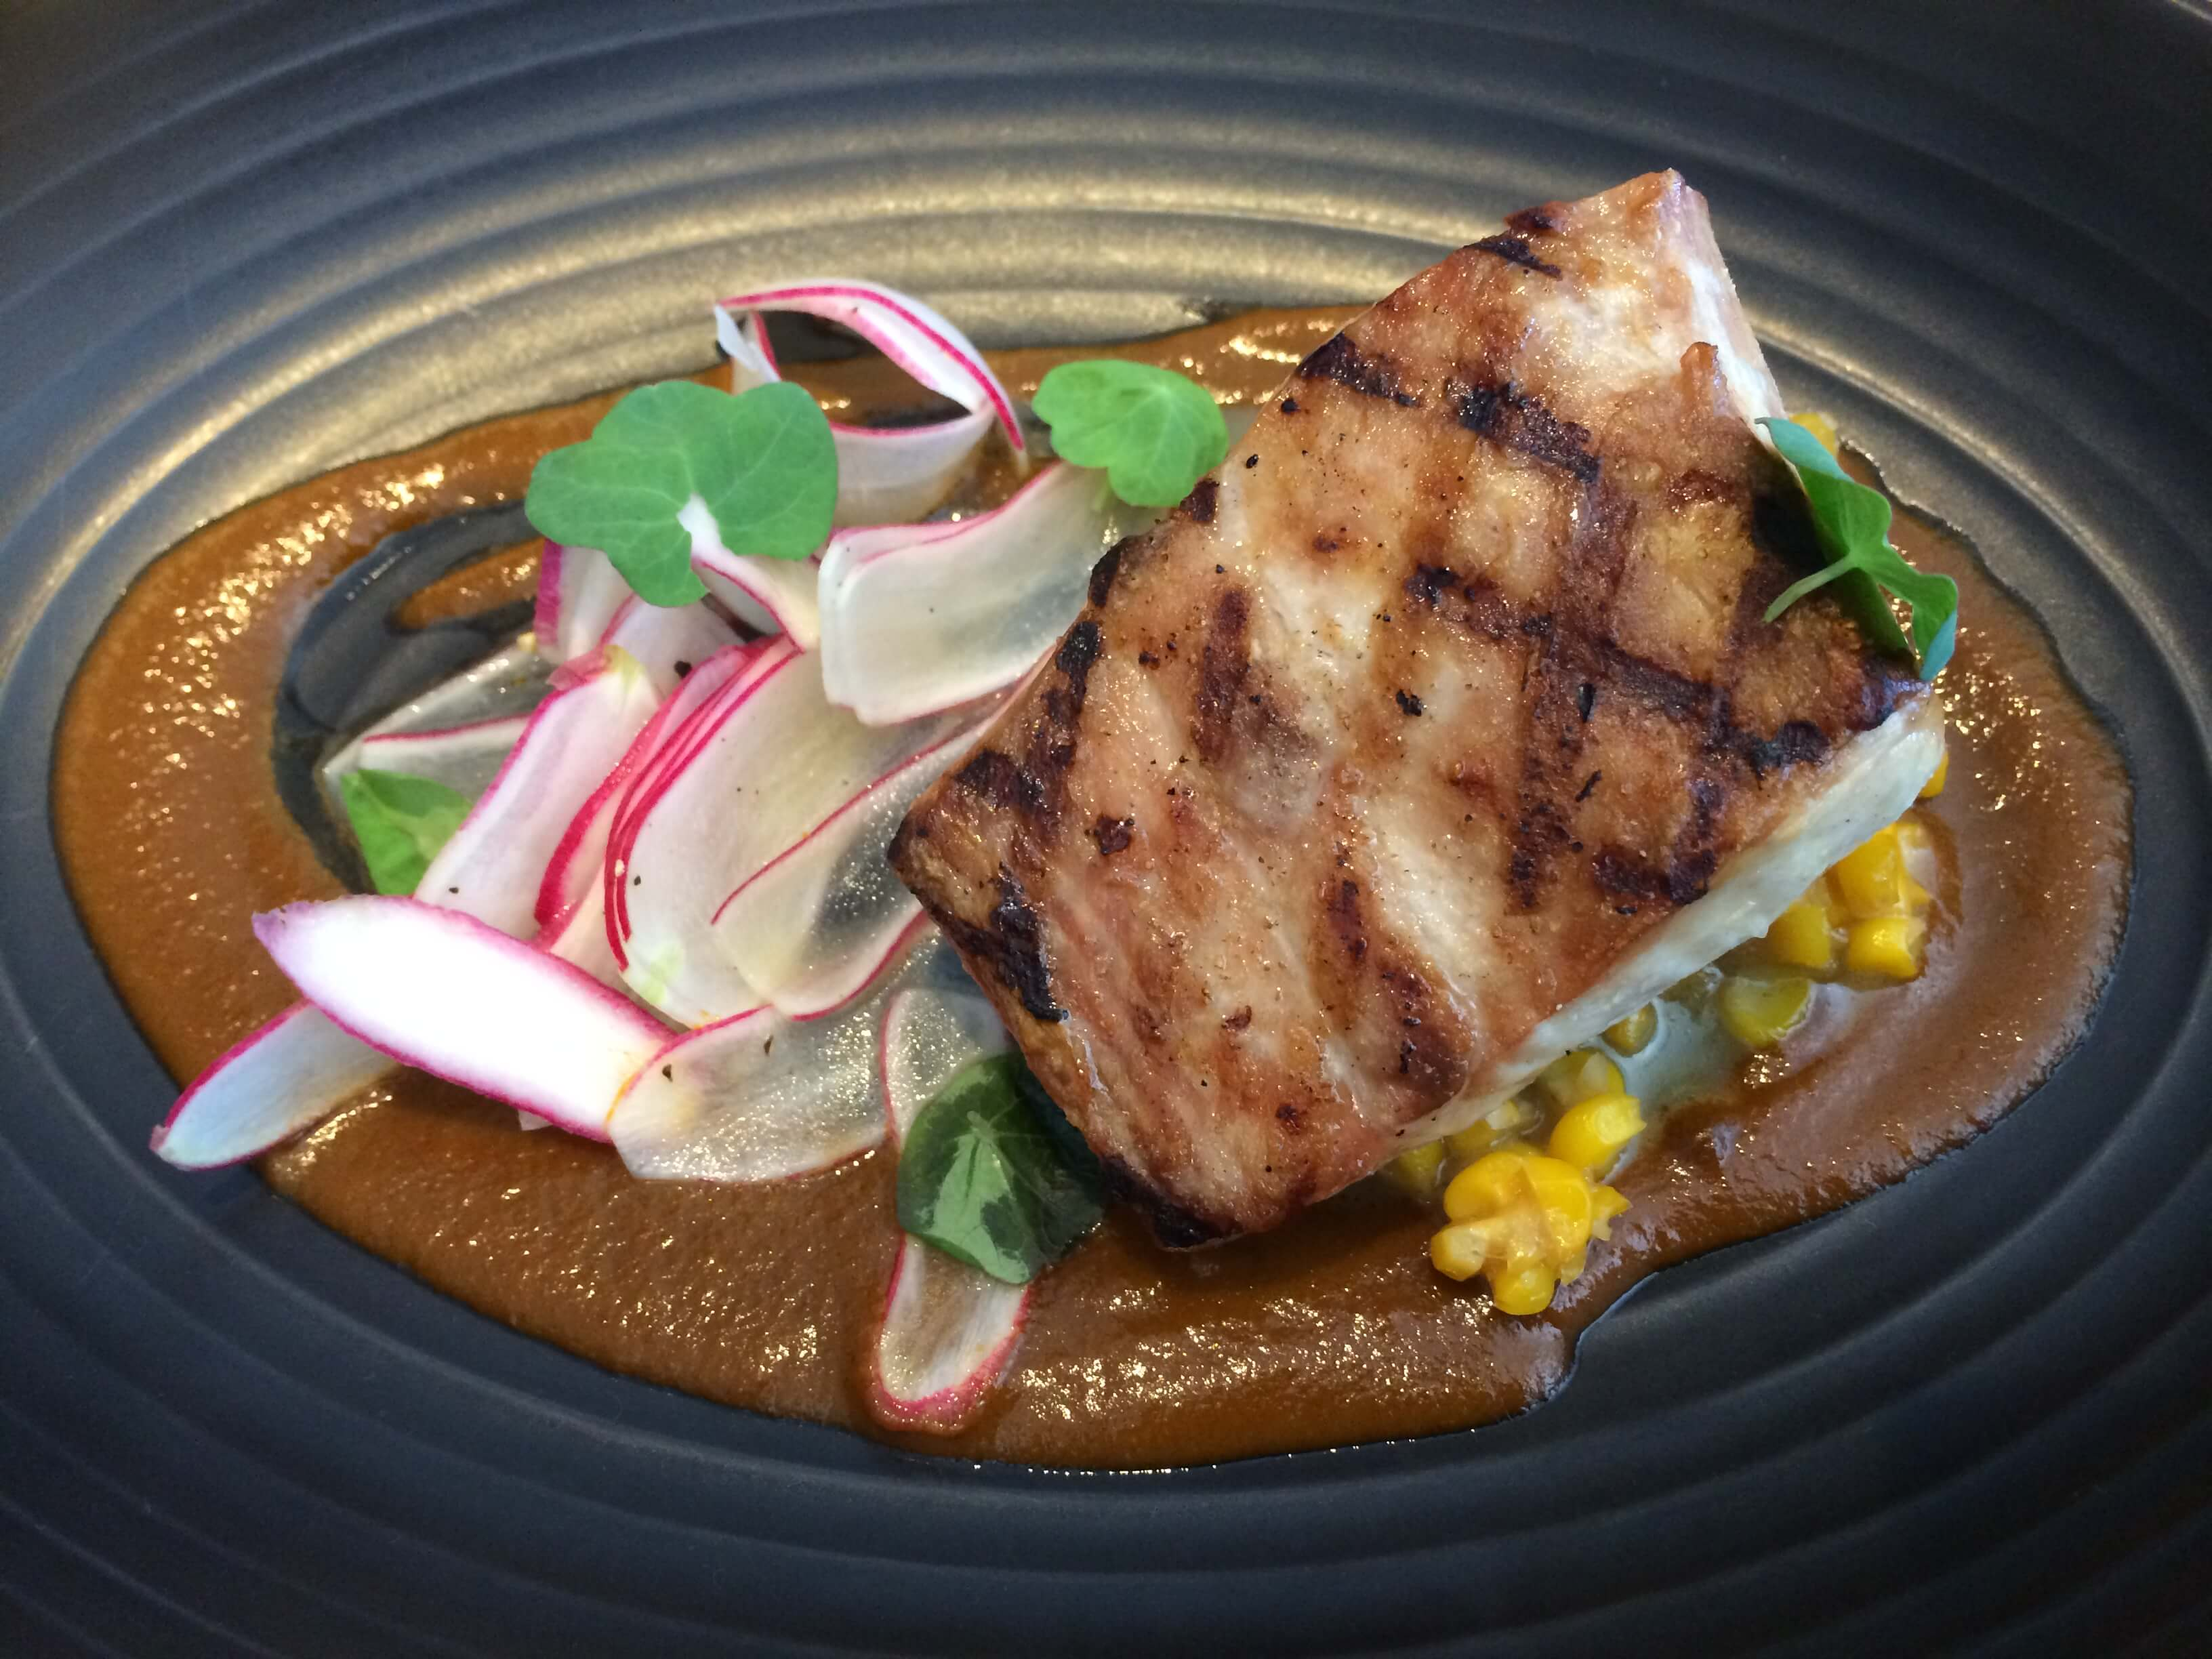 Grilled Local Yellowtail, Ancho Chili-Caramelized Onion Puree, Sweet Corn, Radish